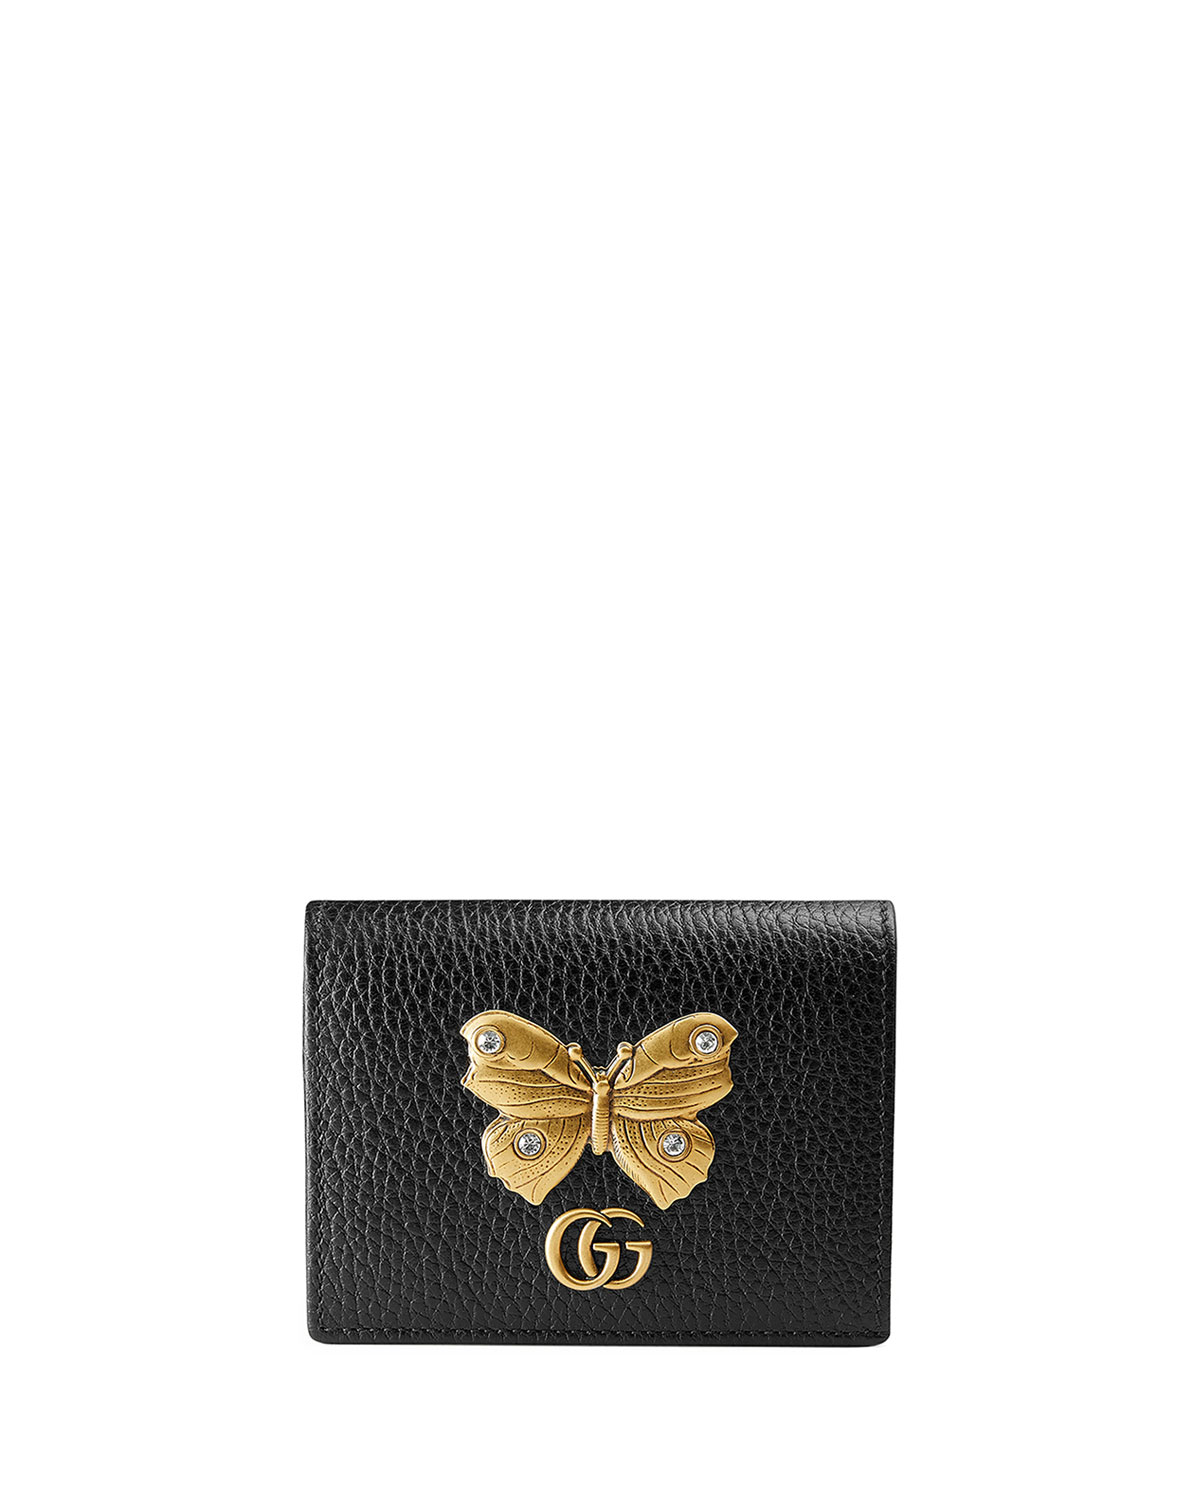 new concept 3feaf 0f3d7 Linea Farfalla Leather Card Case with Butterfly